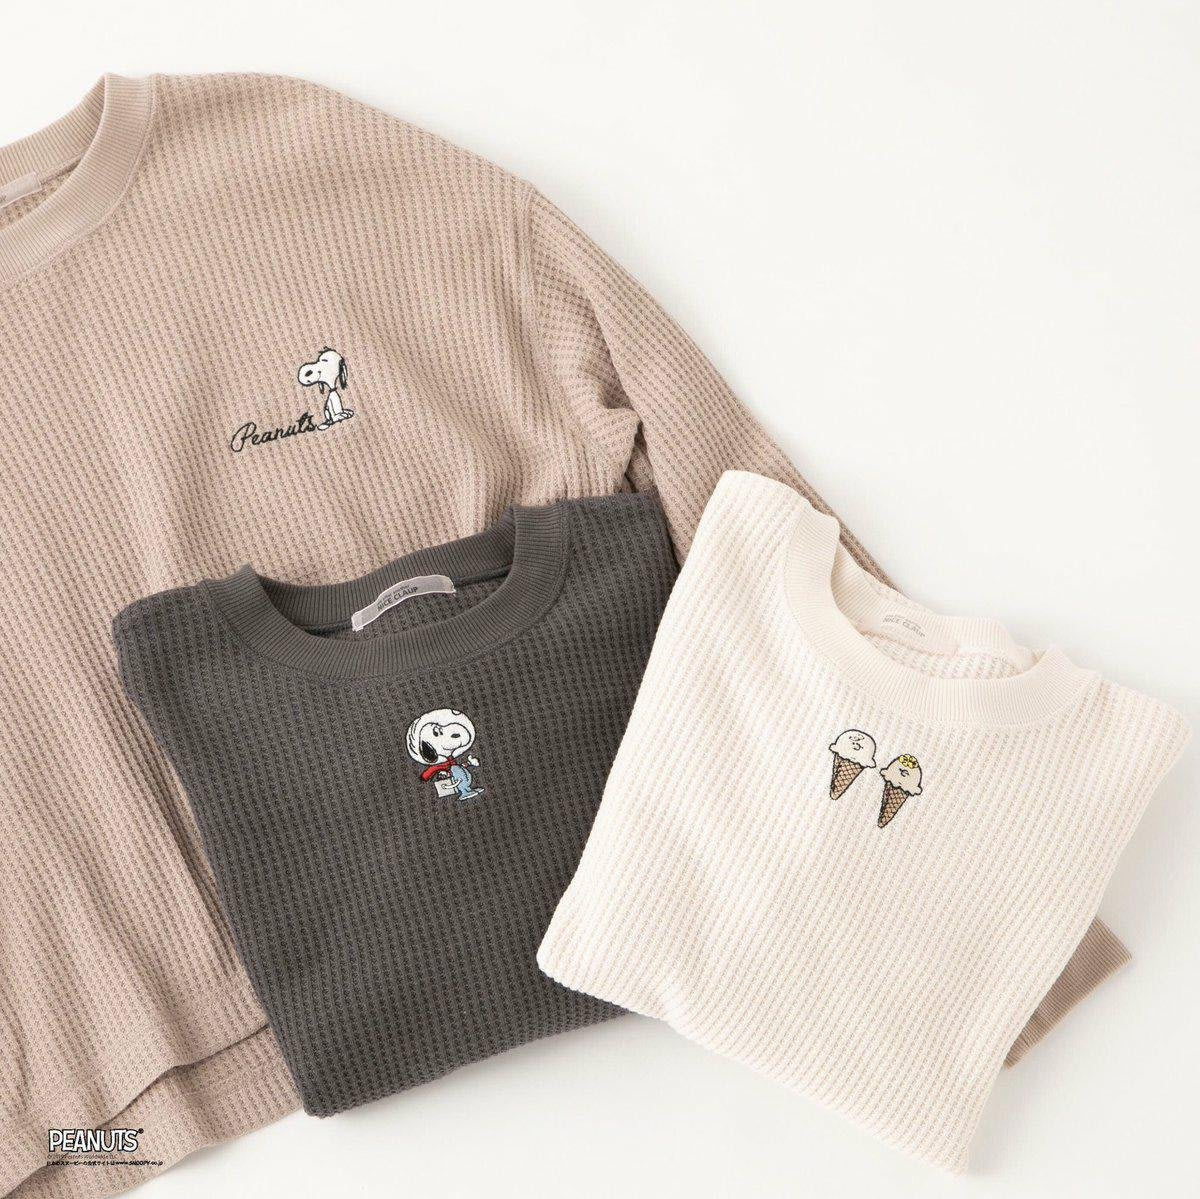 SNOOPYコラボの第2弾! one after another NICE CLAUP×PEANUTSのワッフルTシャツ